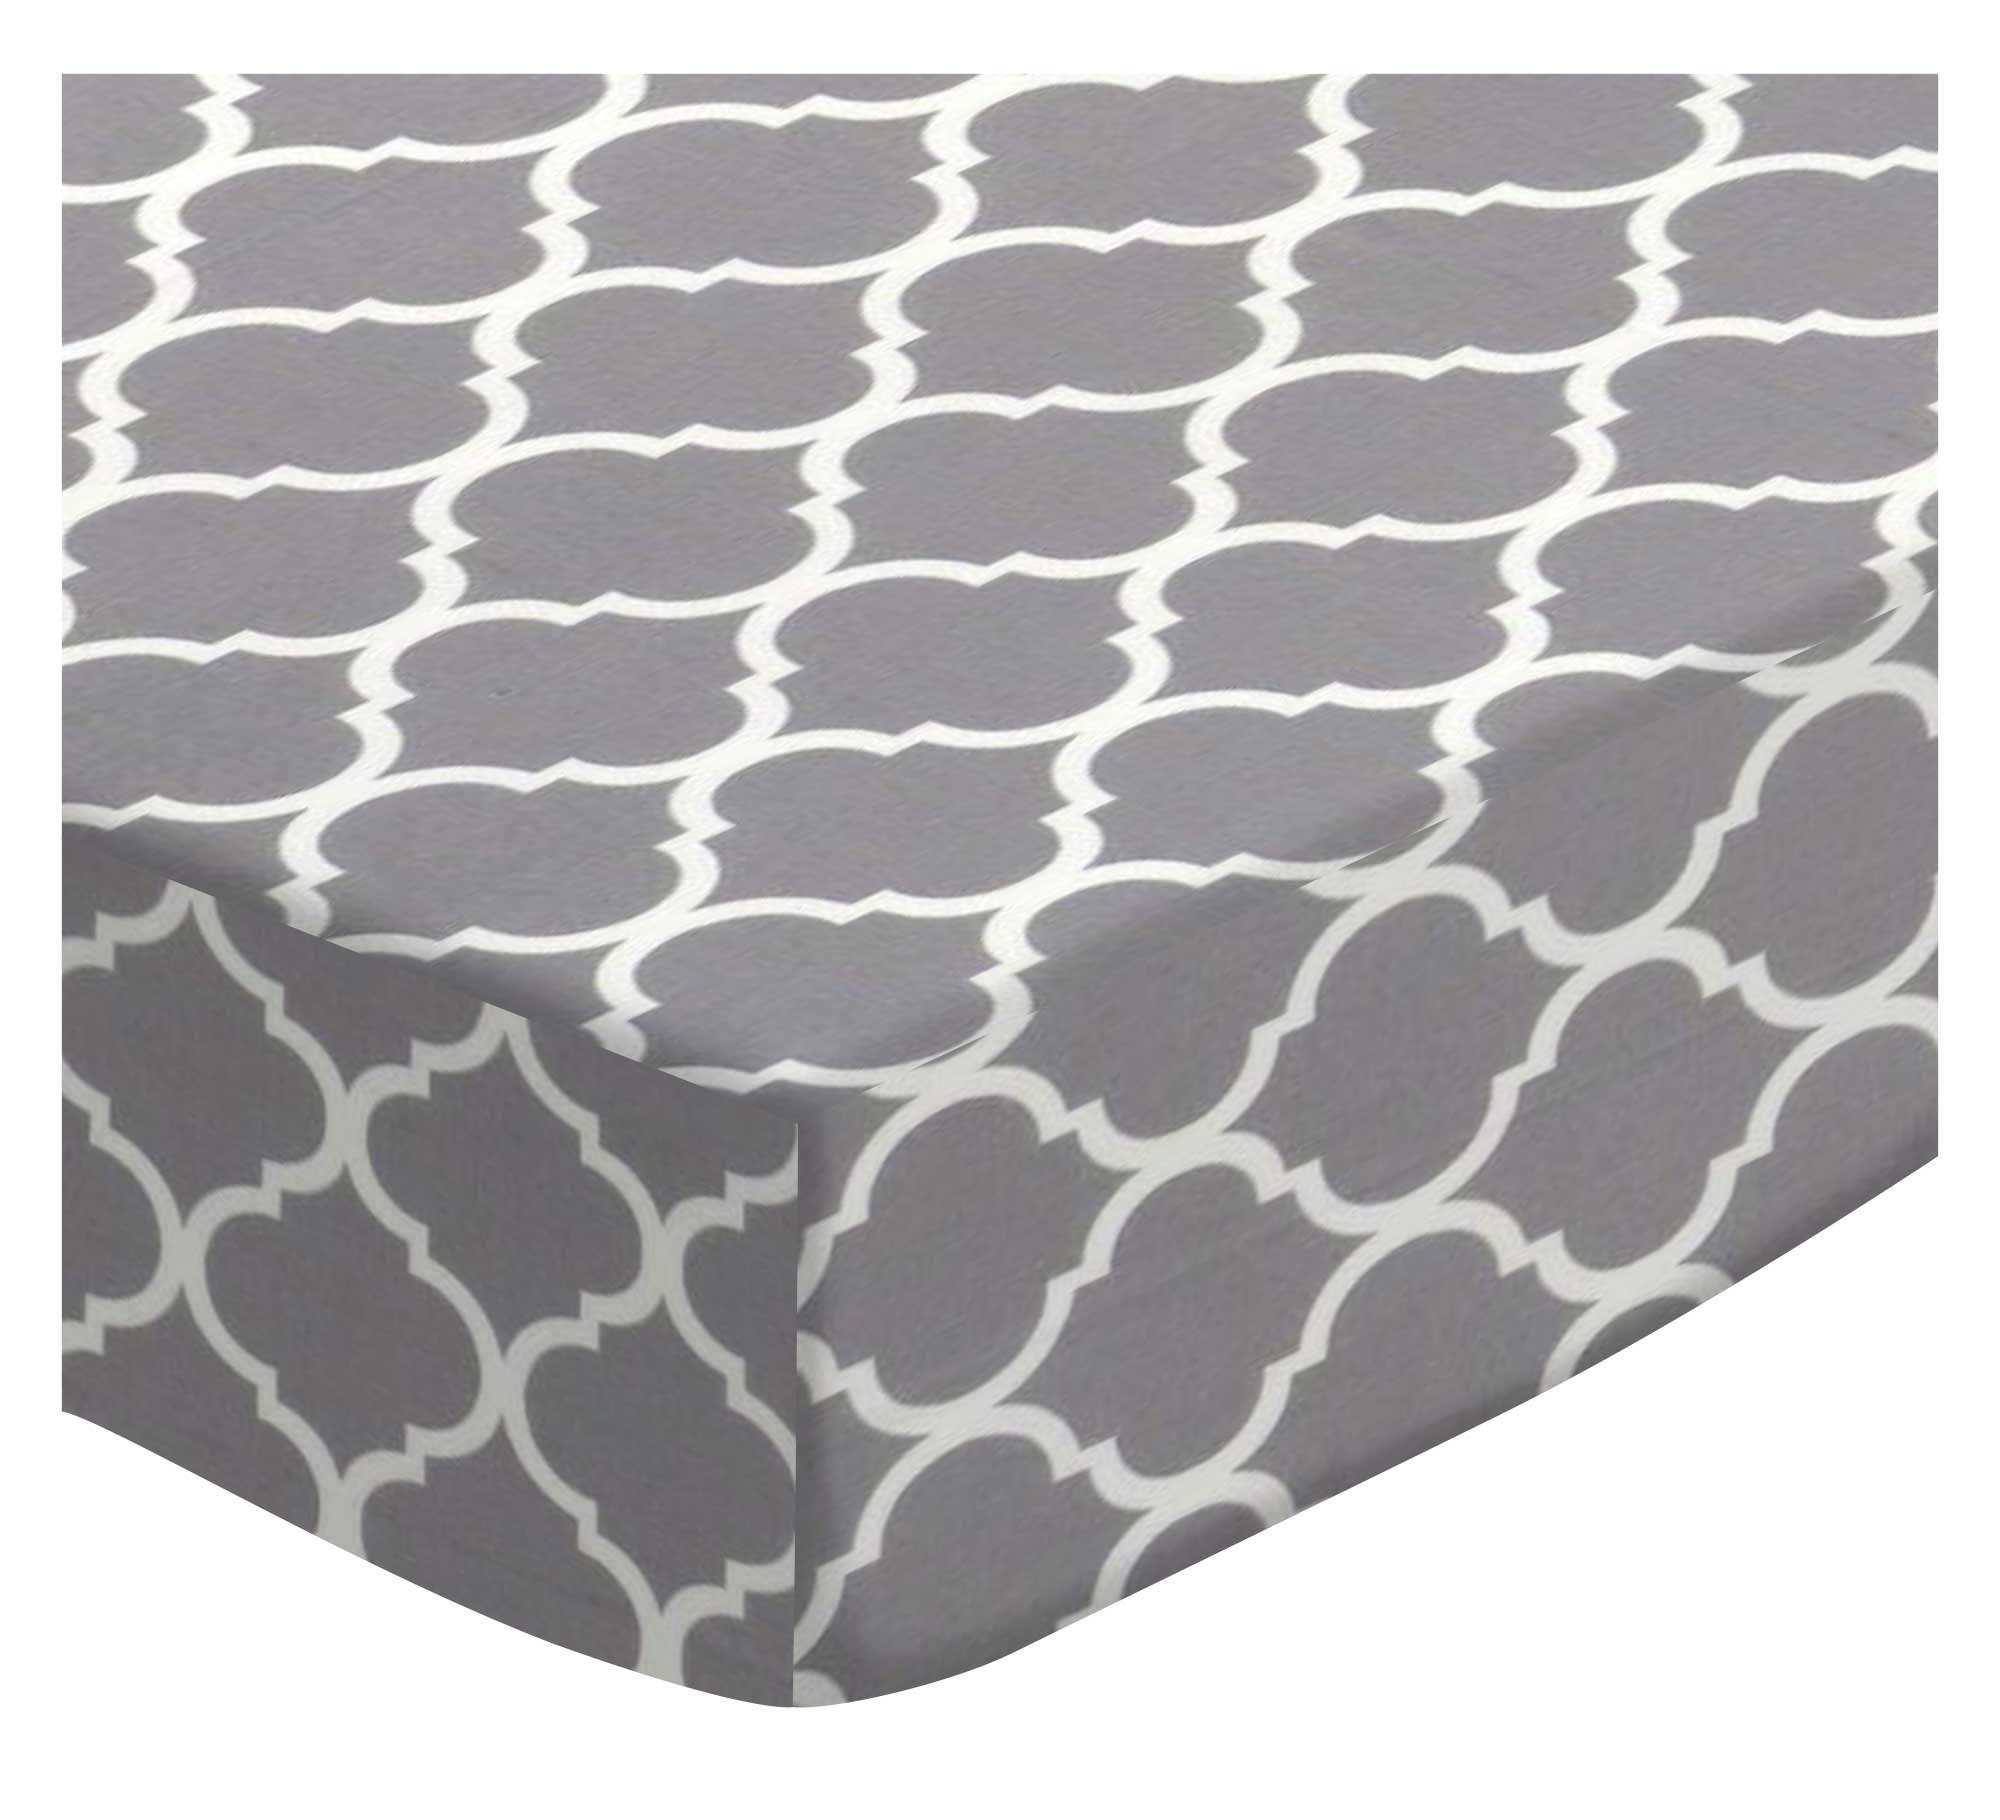 SheetWorld Fitted Pack N Play Sheet Fits Graco Square Playard 36 x 36 - Grey Large Quatrefoil - Made in USA by SHEETWORLD.COM (Image #1)